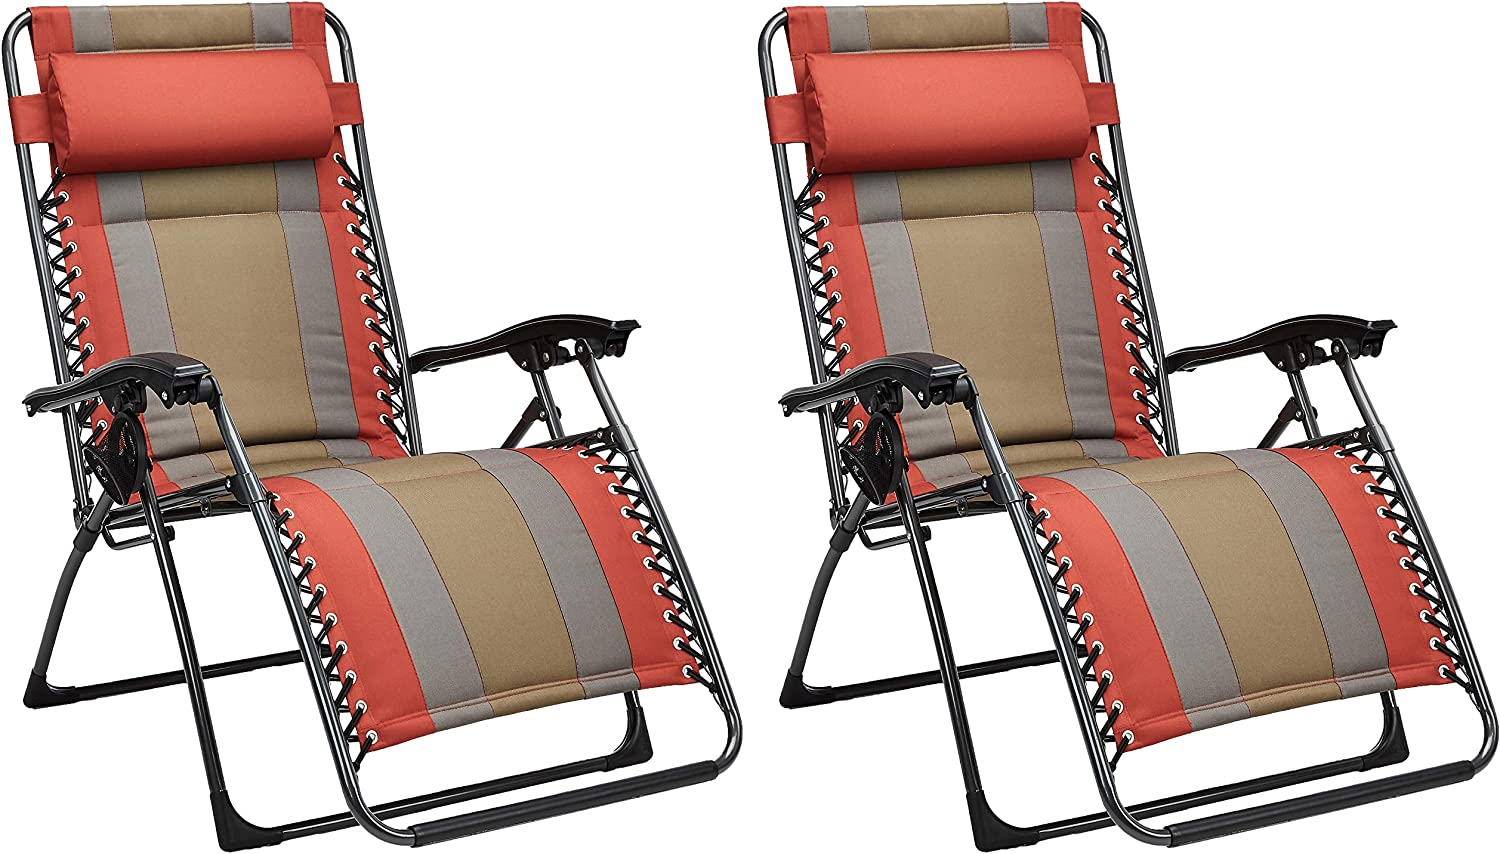 Basics Outdoor Padded Zero Gravity Lounge Beach Chair - Pack of 2, 65 x 29.5 x 44.1 Inches, Tan : Garden & Outdoor